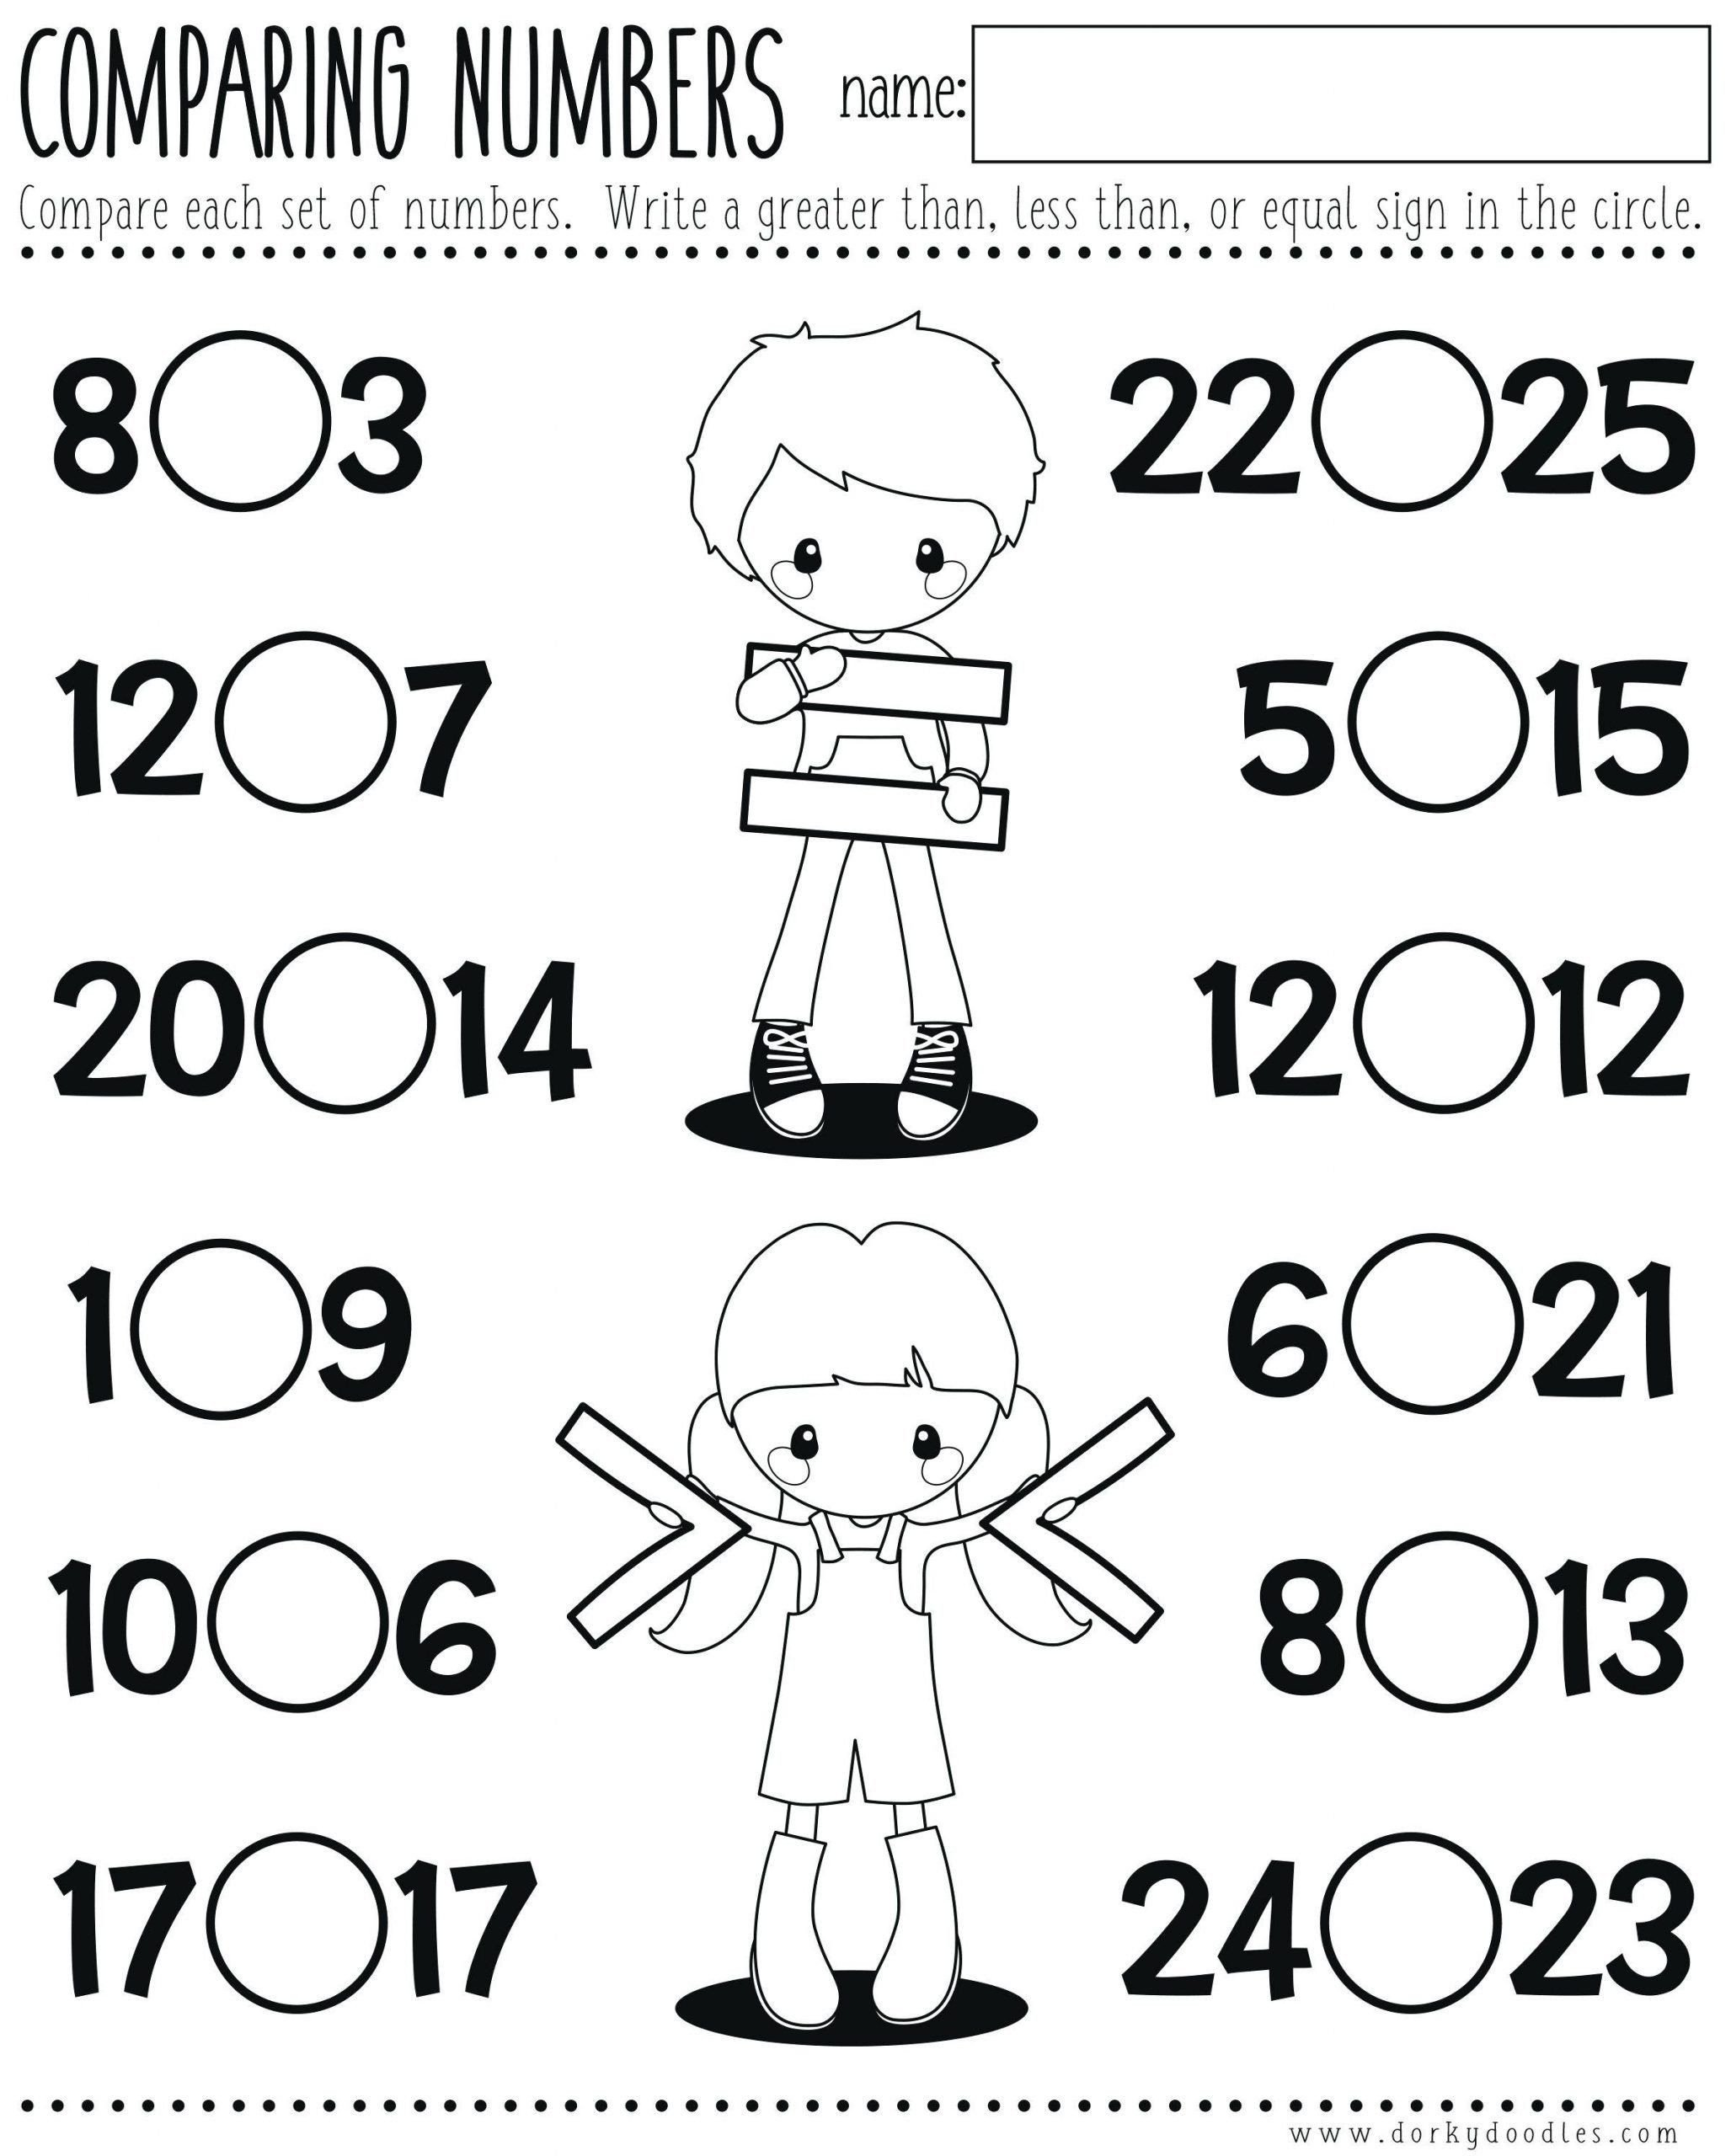 Comparing Quantities Worksheets Paring Quantities Kindergarten Worksheets